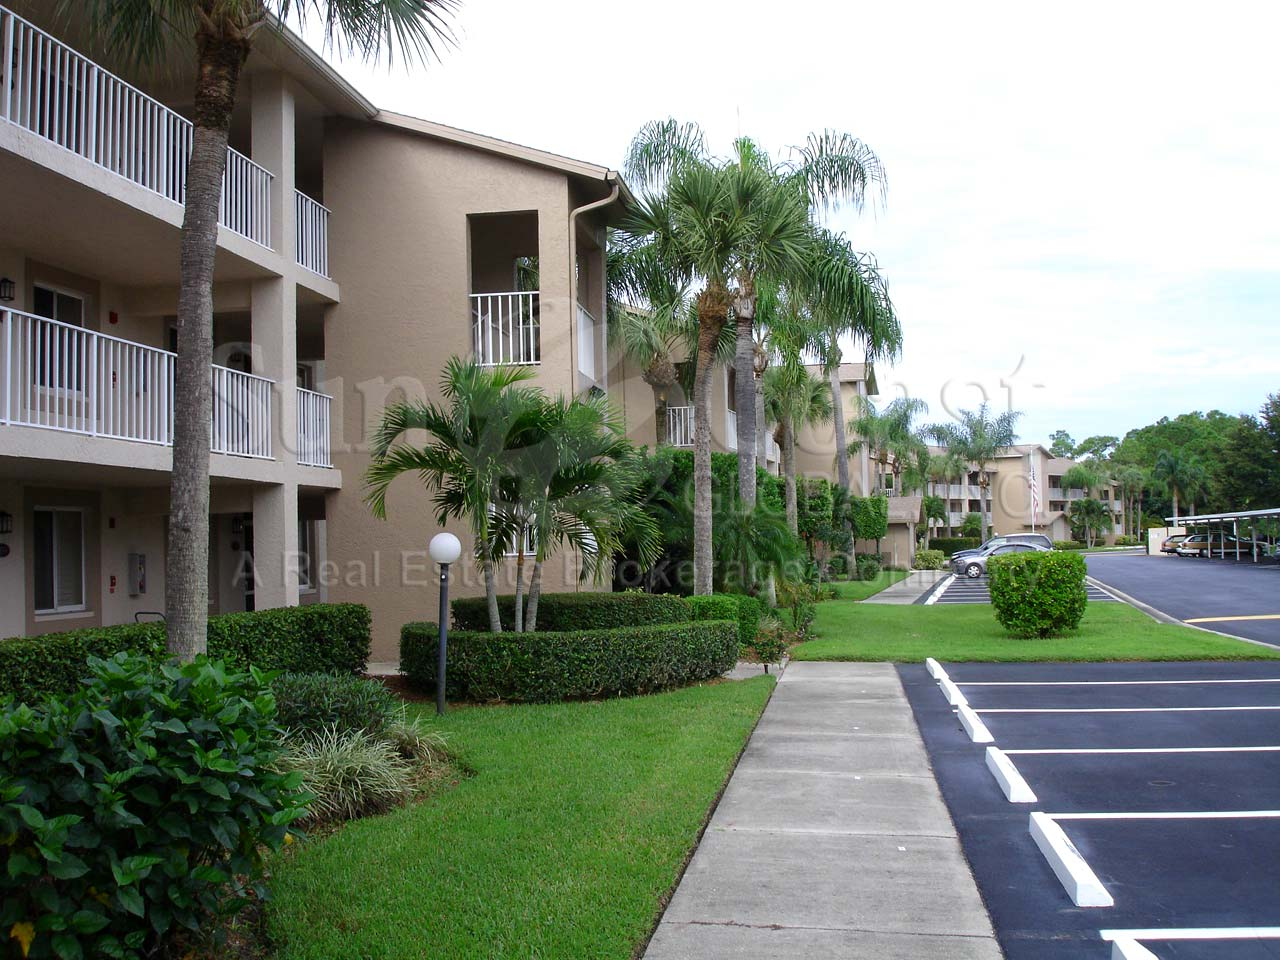 Country Glen At Countryside Real Estate Naples Florida Fla Fl